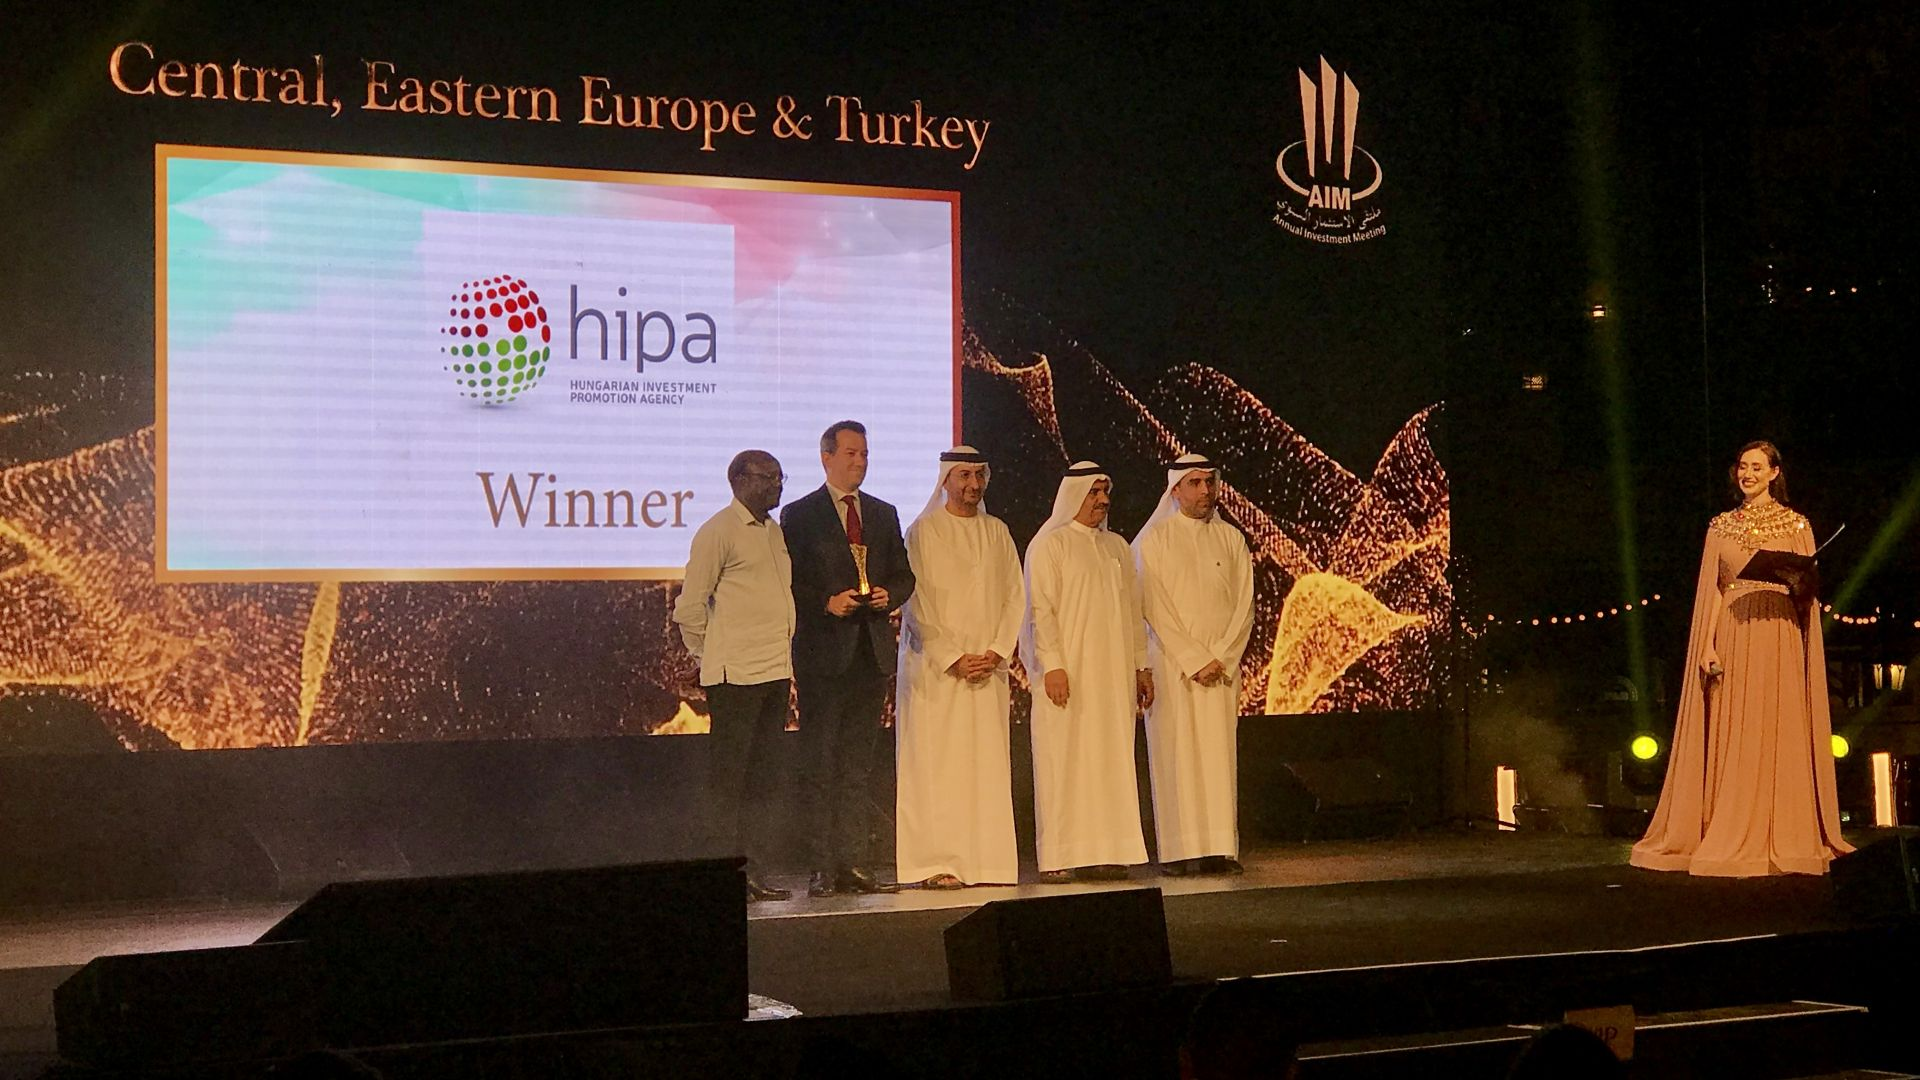 HIPA wins the AIM Annual Investment Award 2019 for its outstanding results